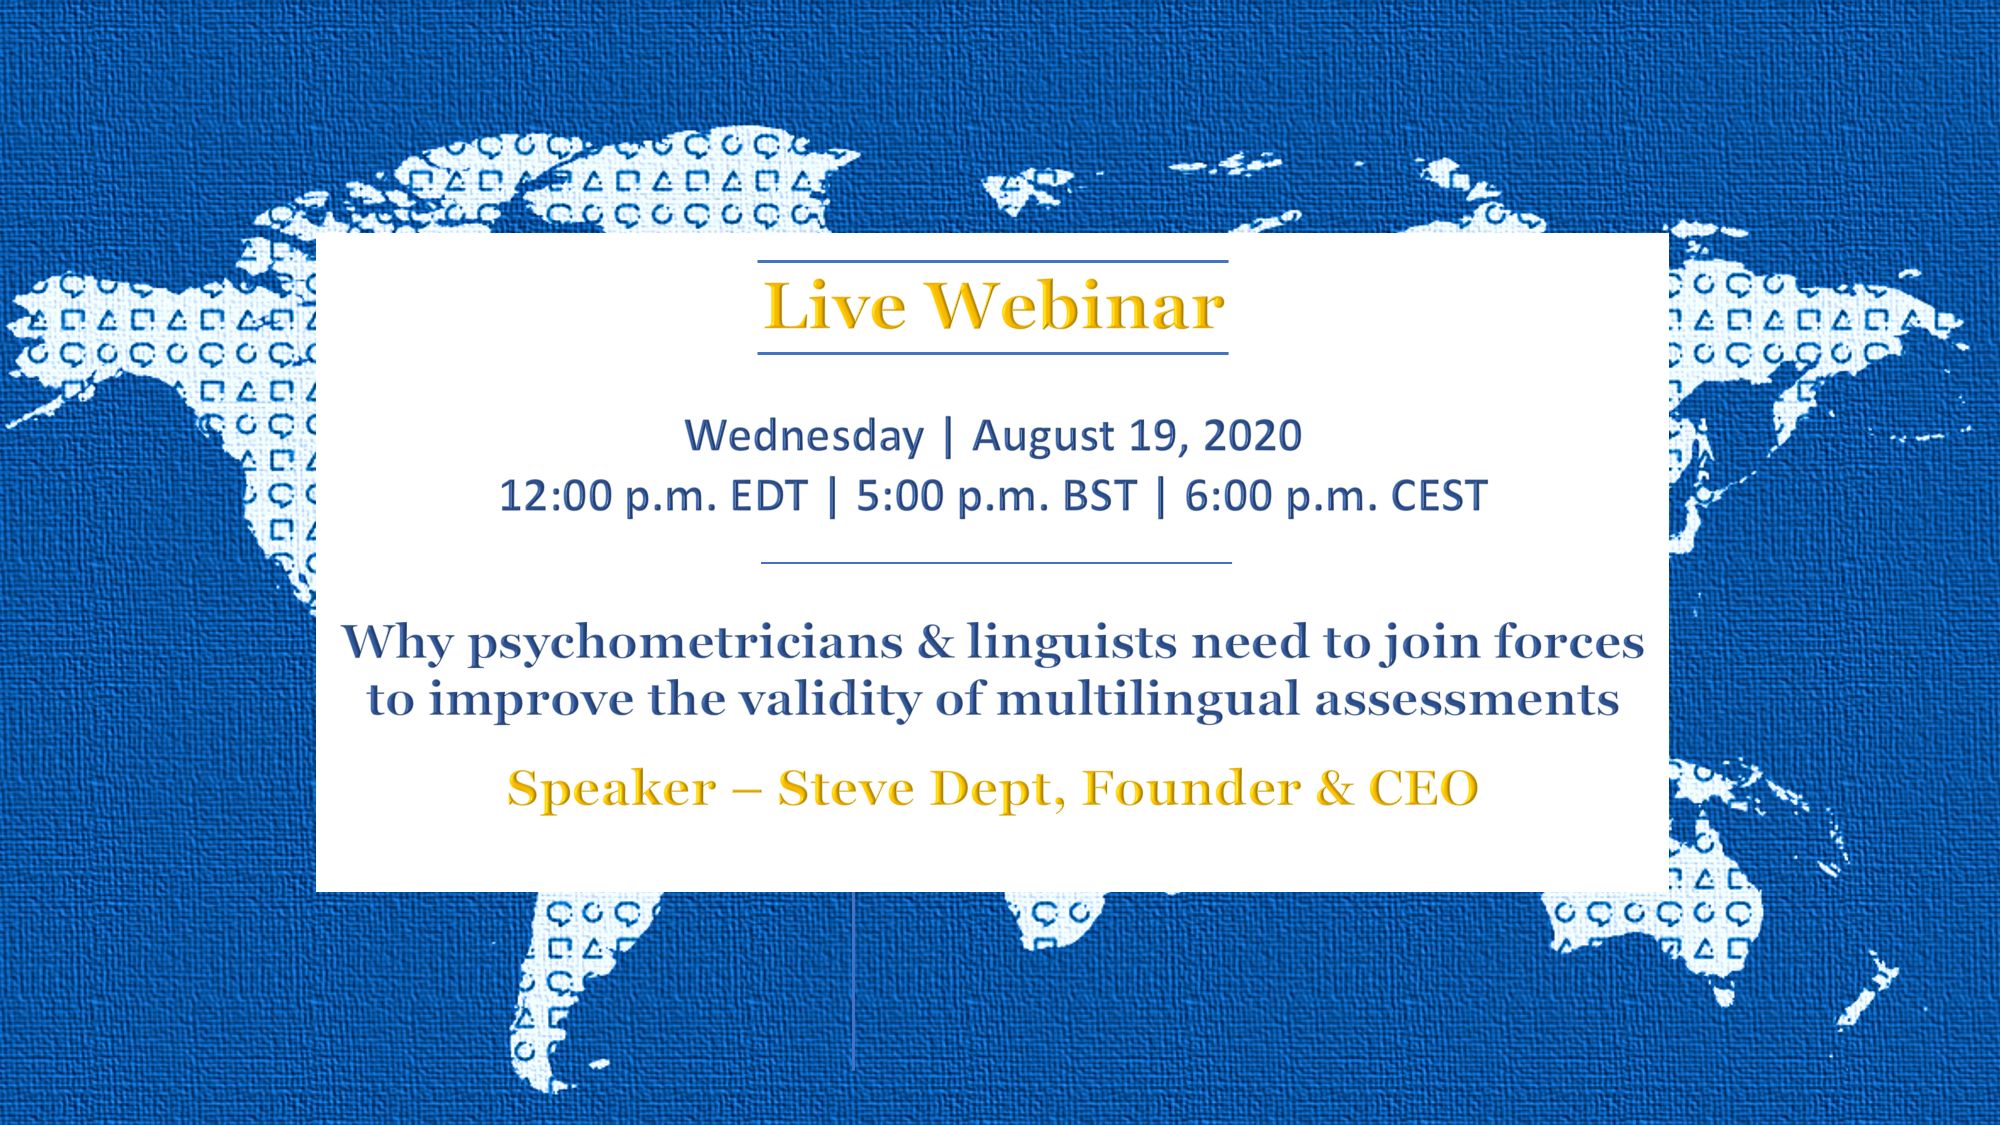 Webinar | Why psychometricians & linguists need to join forces to improve the validity of multilingual assessments